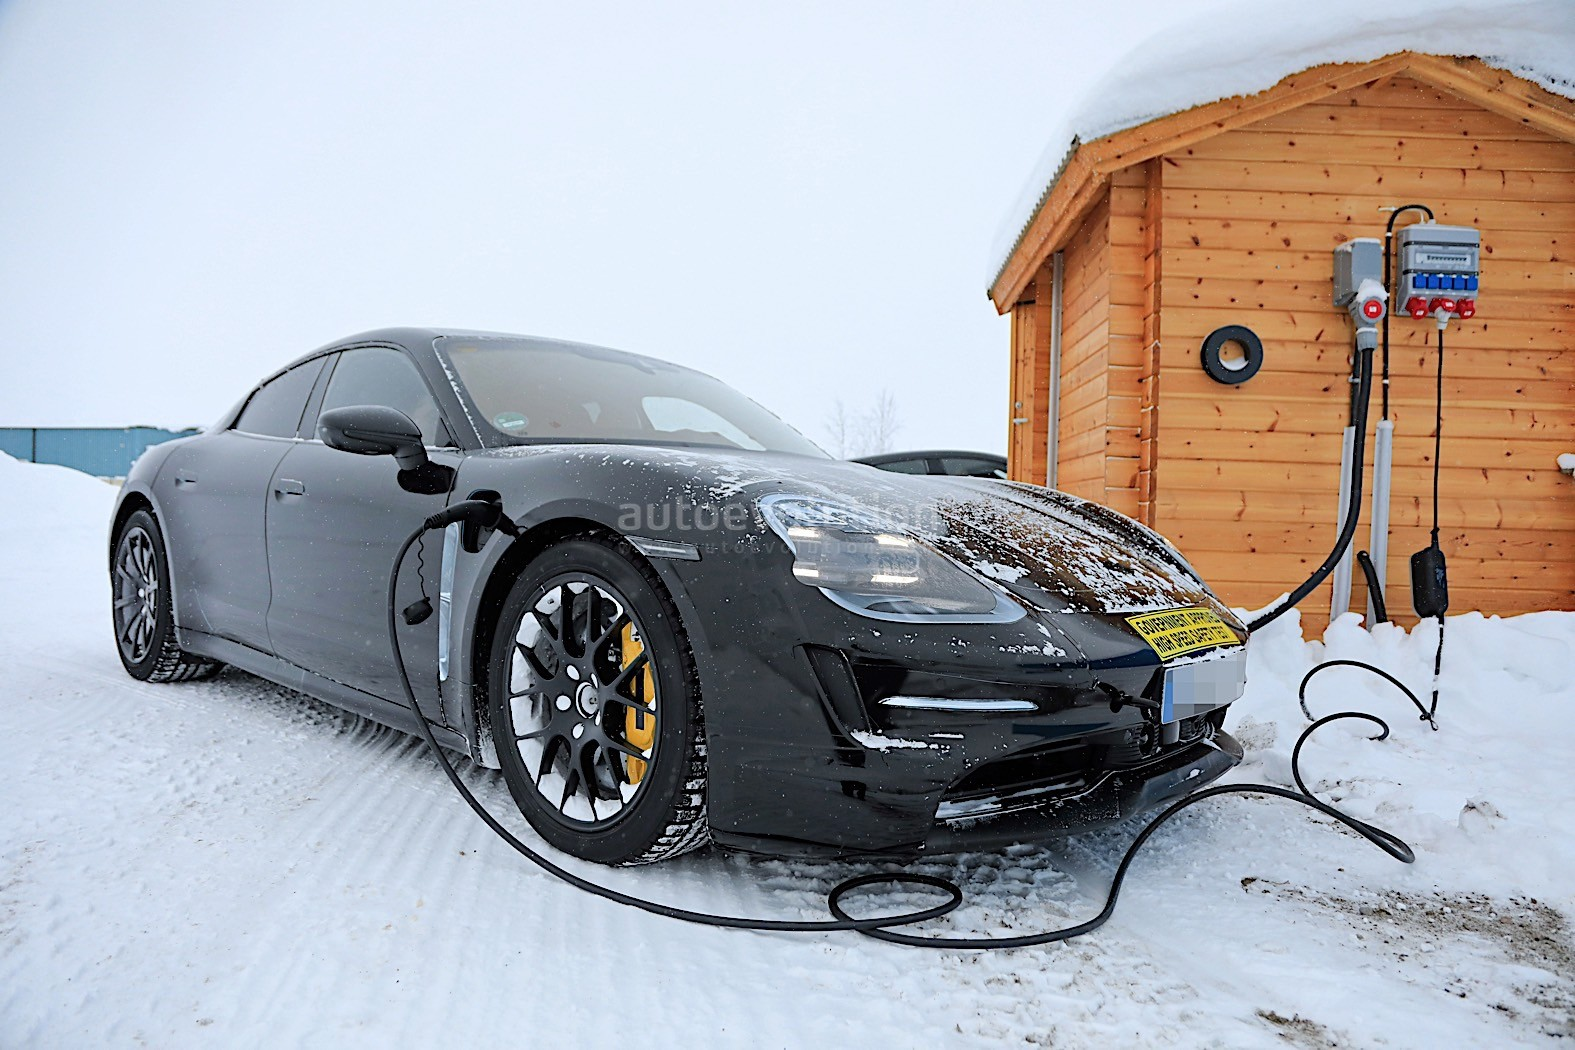 2019 - [Porsche] Taycan [J1] - Page 4 Porsche-taycan-caught-charging-paparazzis-have-a-field-day_31